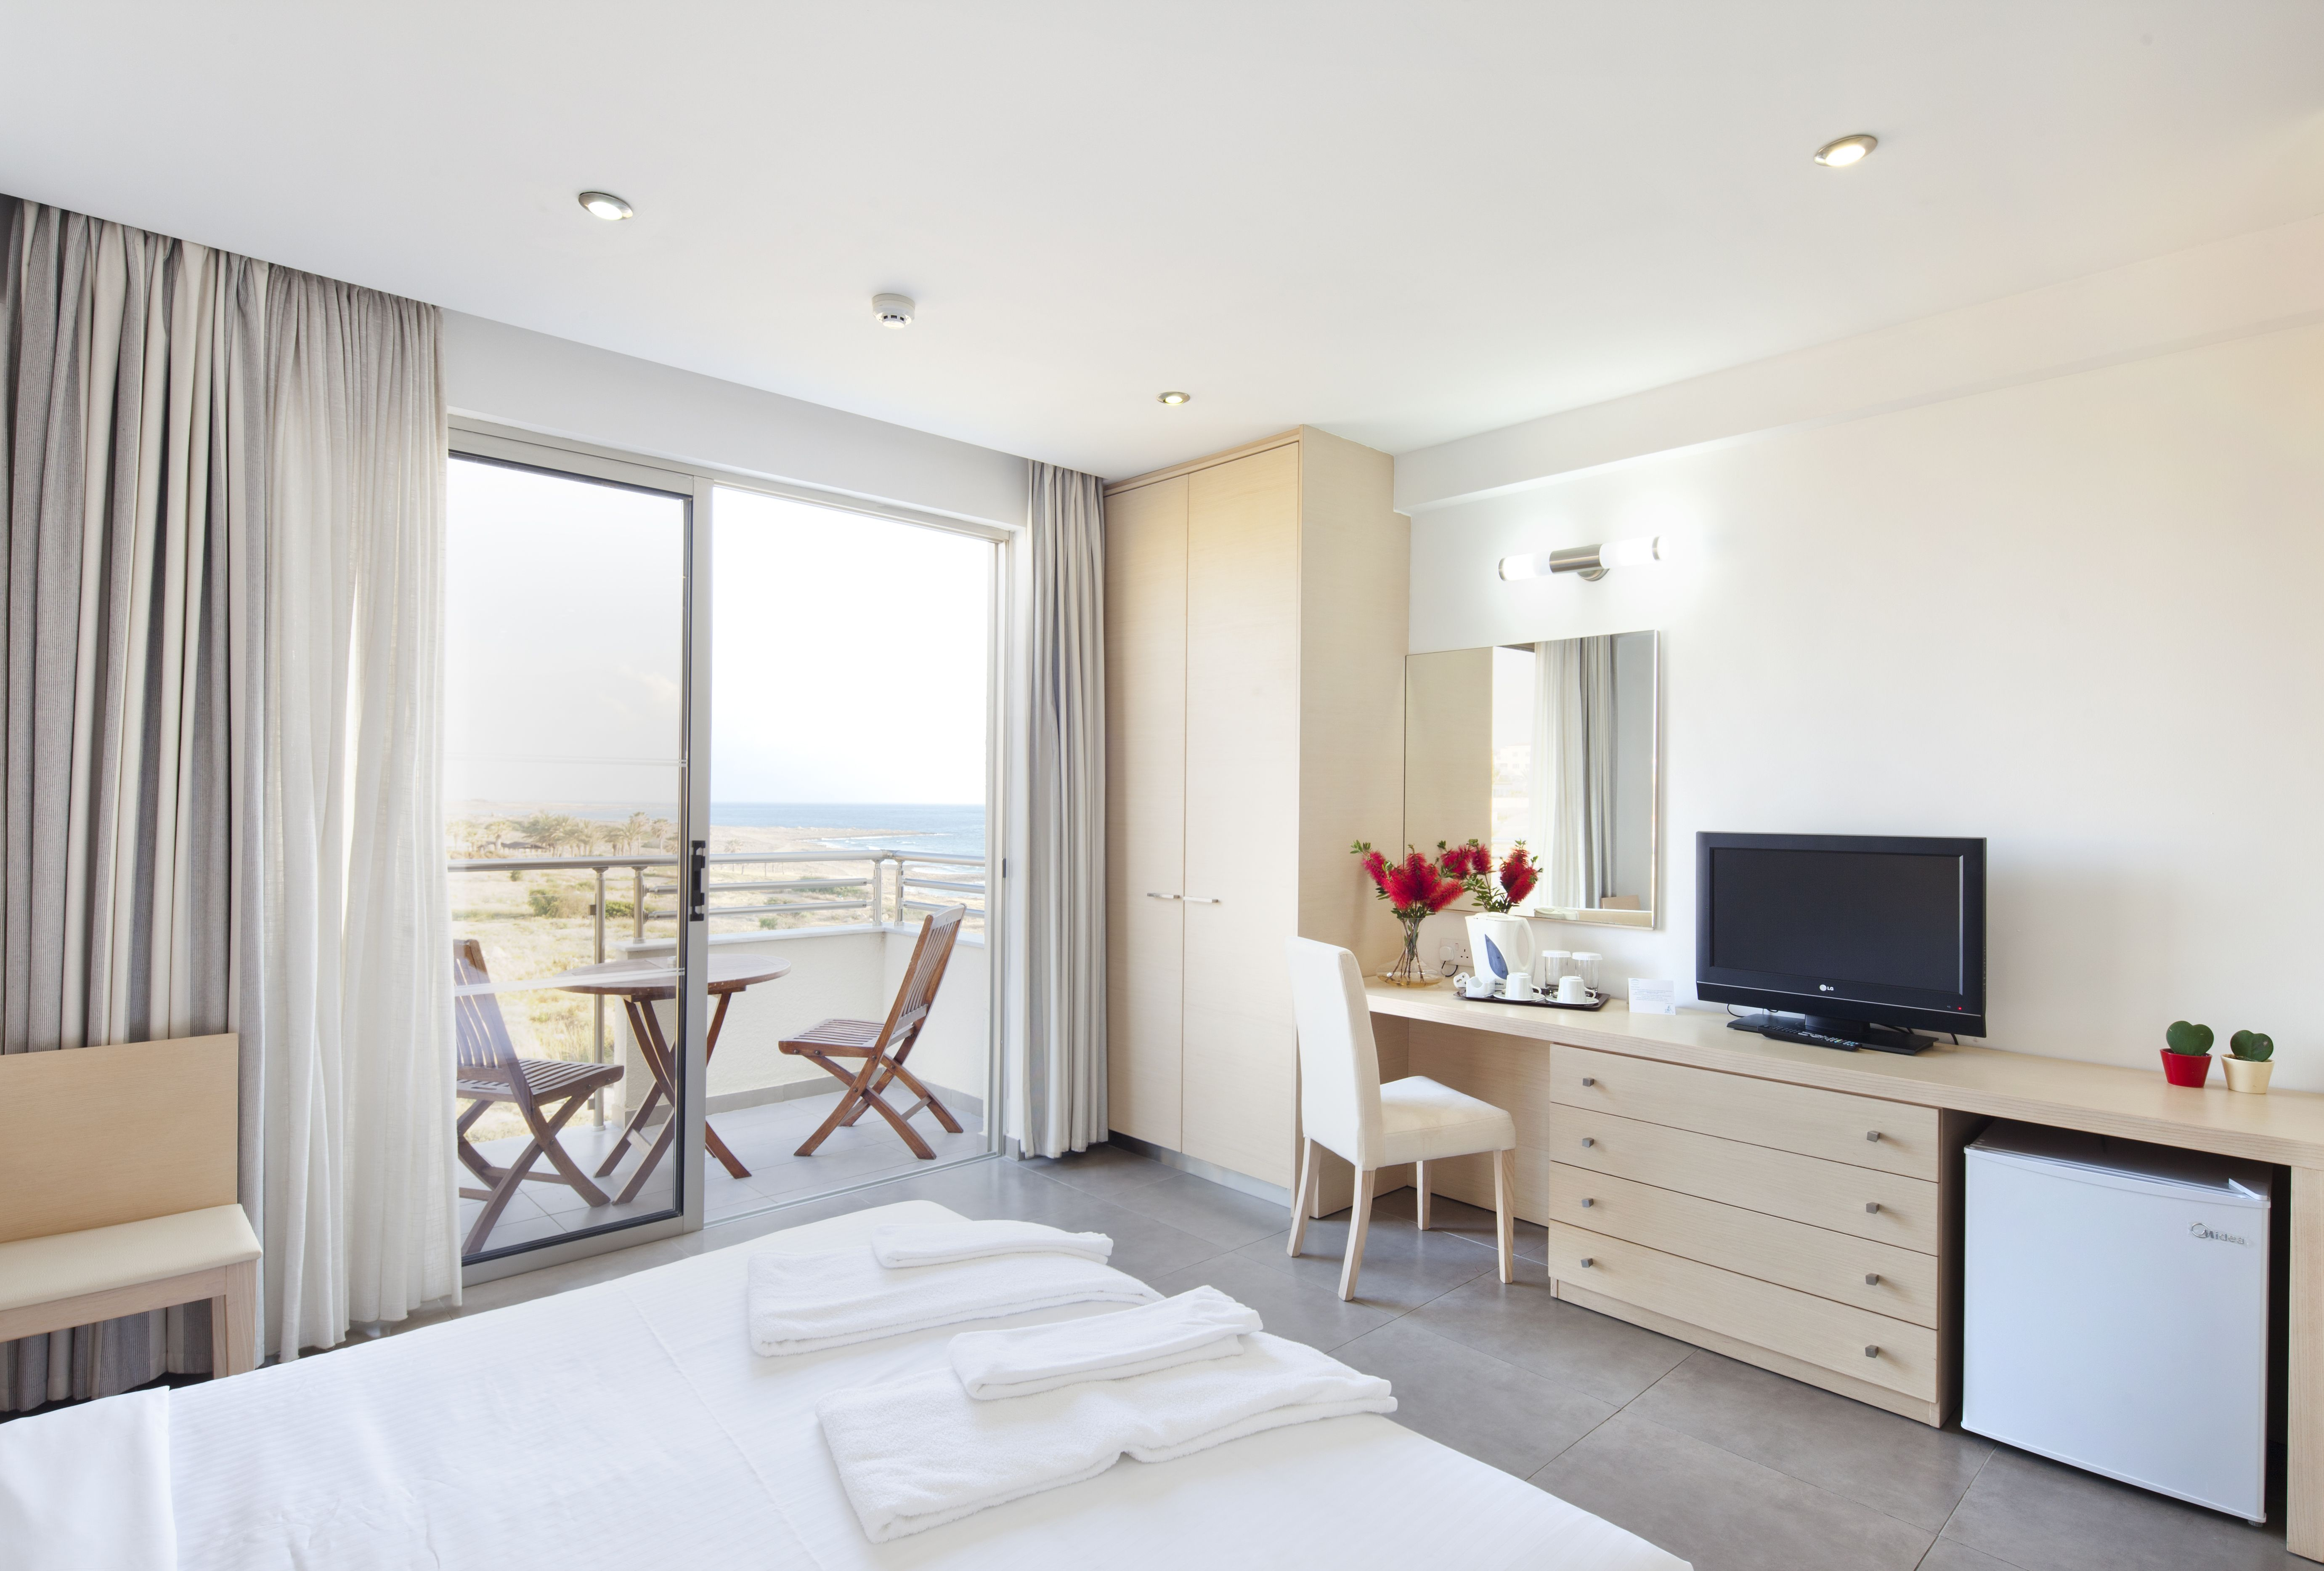 Standard room with Sea view. Hotels room, Home, Room